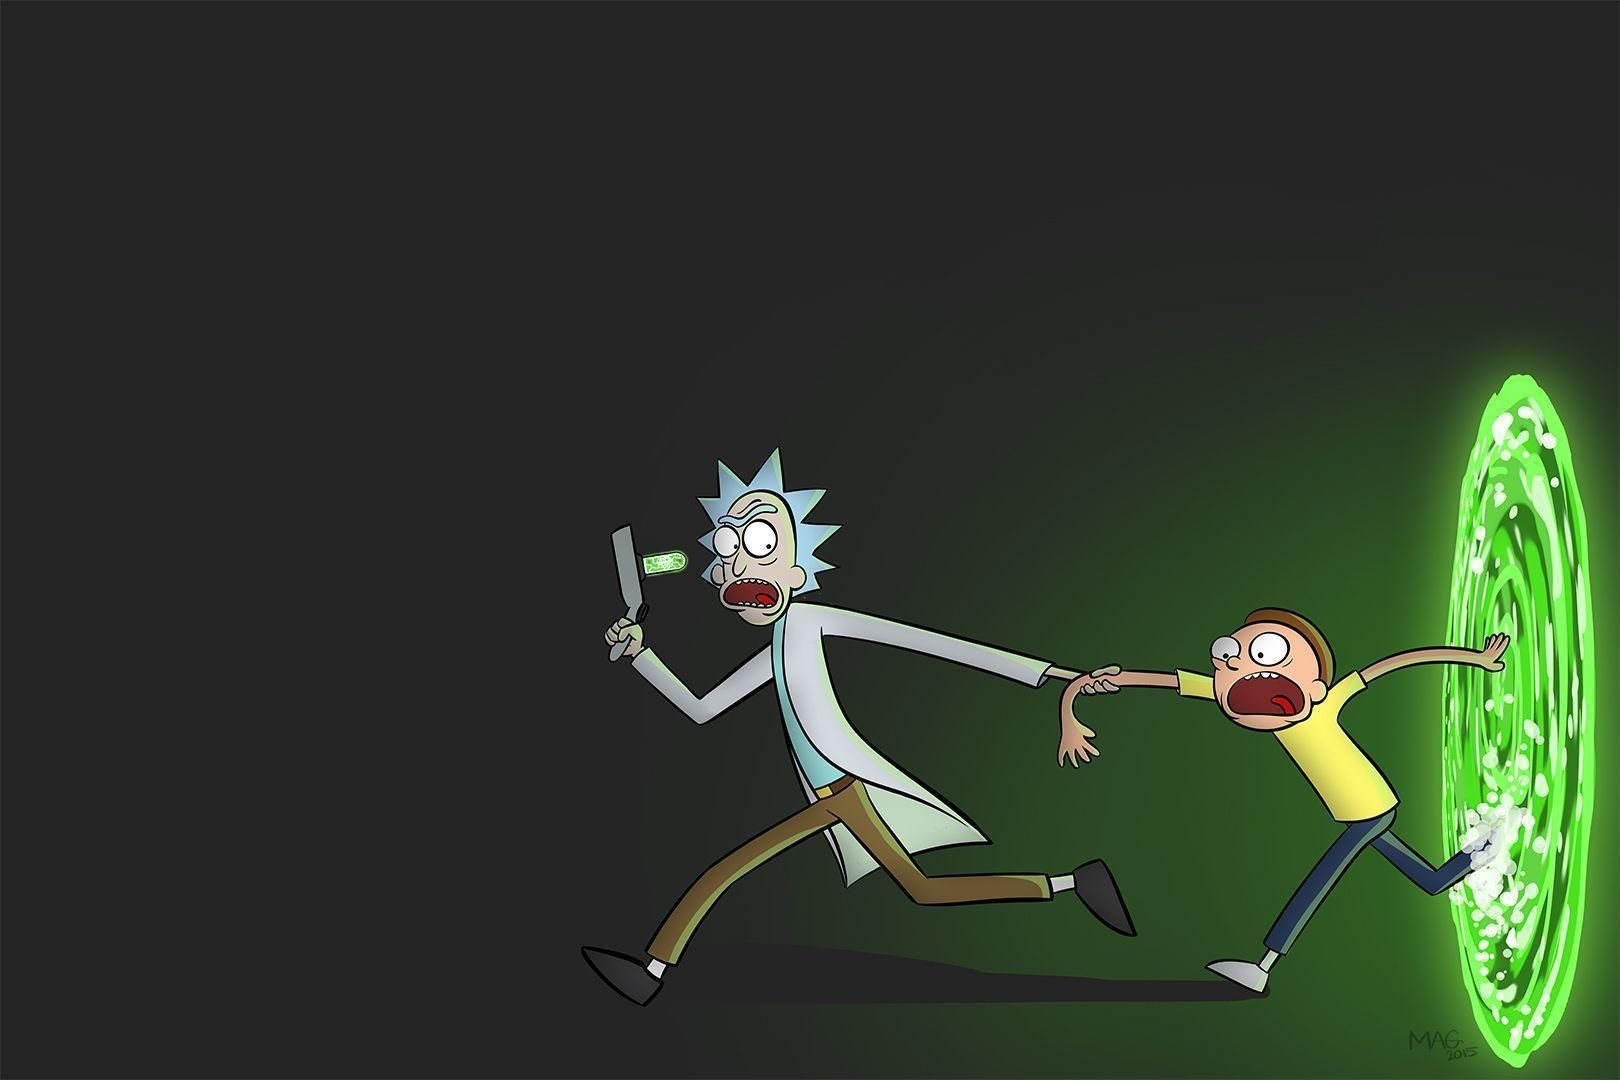 Rick And Morty Wallpapers Wallpaper Cave With Regard To Brilliant Rick And Morty Wallpaper Macb Rick And Morty Wallpapers Cartoon Wallpaper Hypebeast Wallpaper